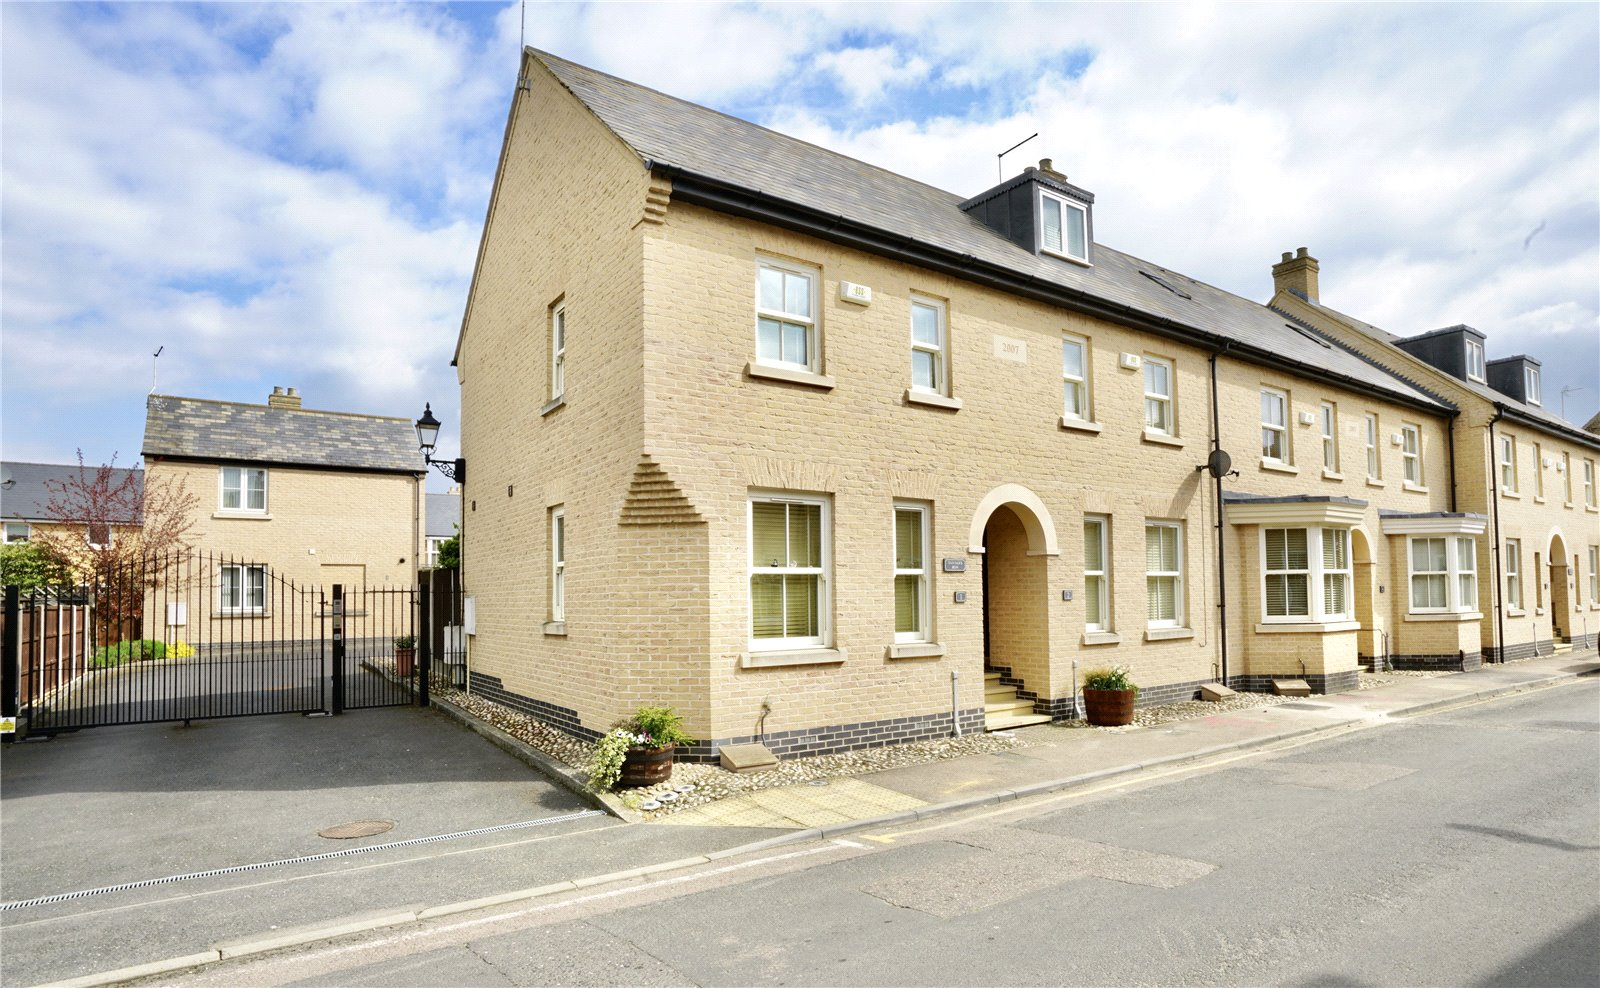 2 bed house for sale in West Street, PE27 5RJ, PE27